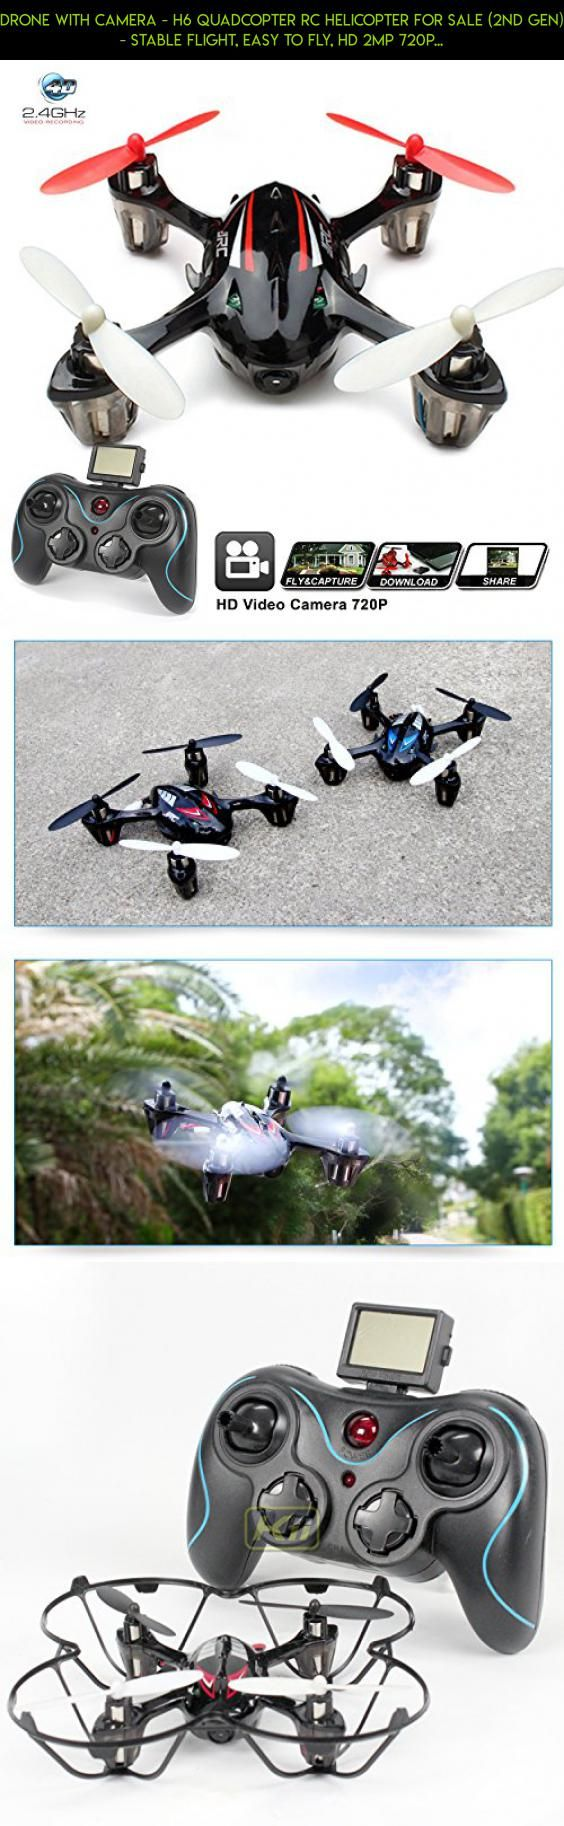 Drone with Camera - H6 Quadcopter RC Helicopter for sale (2nd Gen) - Stable Flight, Easy to Fly, HD 2MP 720p Aerial Photo Video, Headless Mode [USA Warranty + Tech Support] #external #tech #products #plans #shopping #charger #camera #racing #parrot #technology #parts #drone #fpv #kit #battery #gadgets